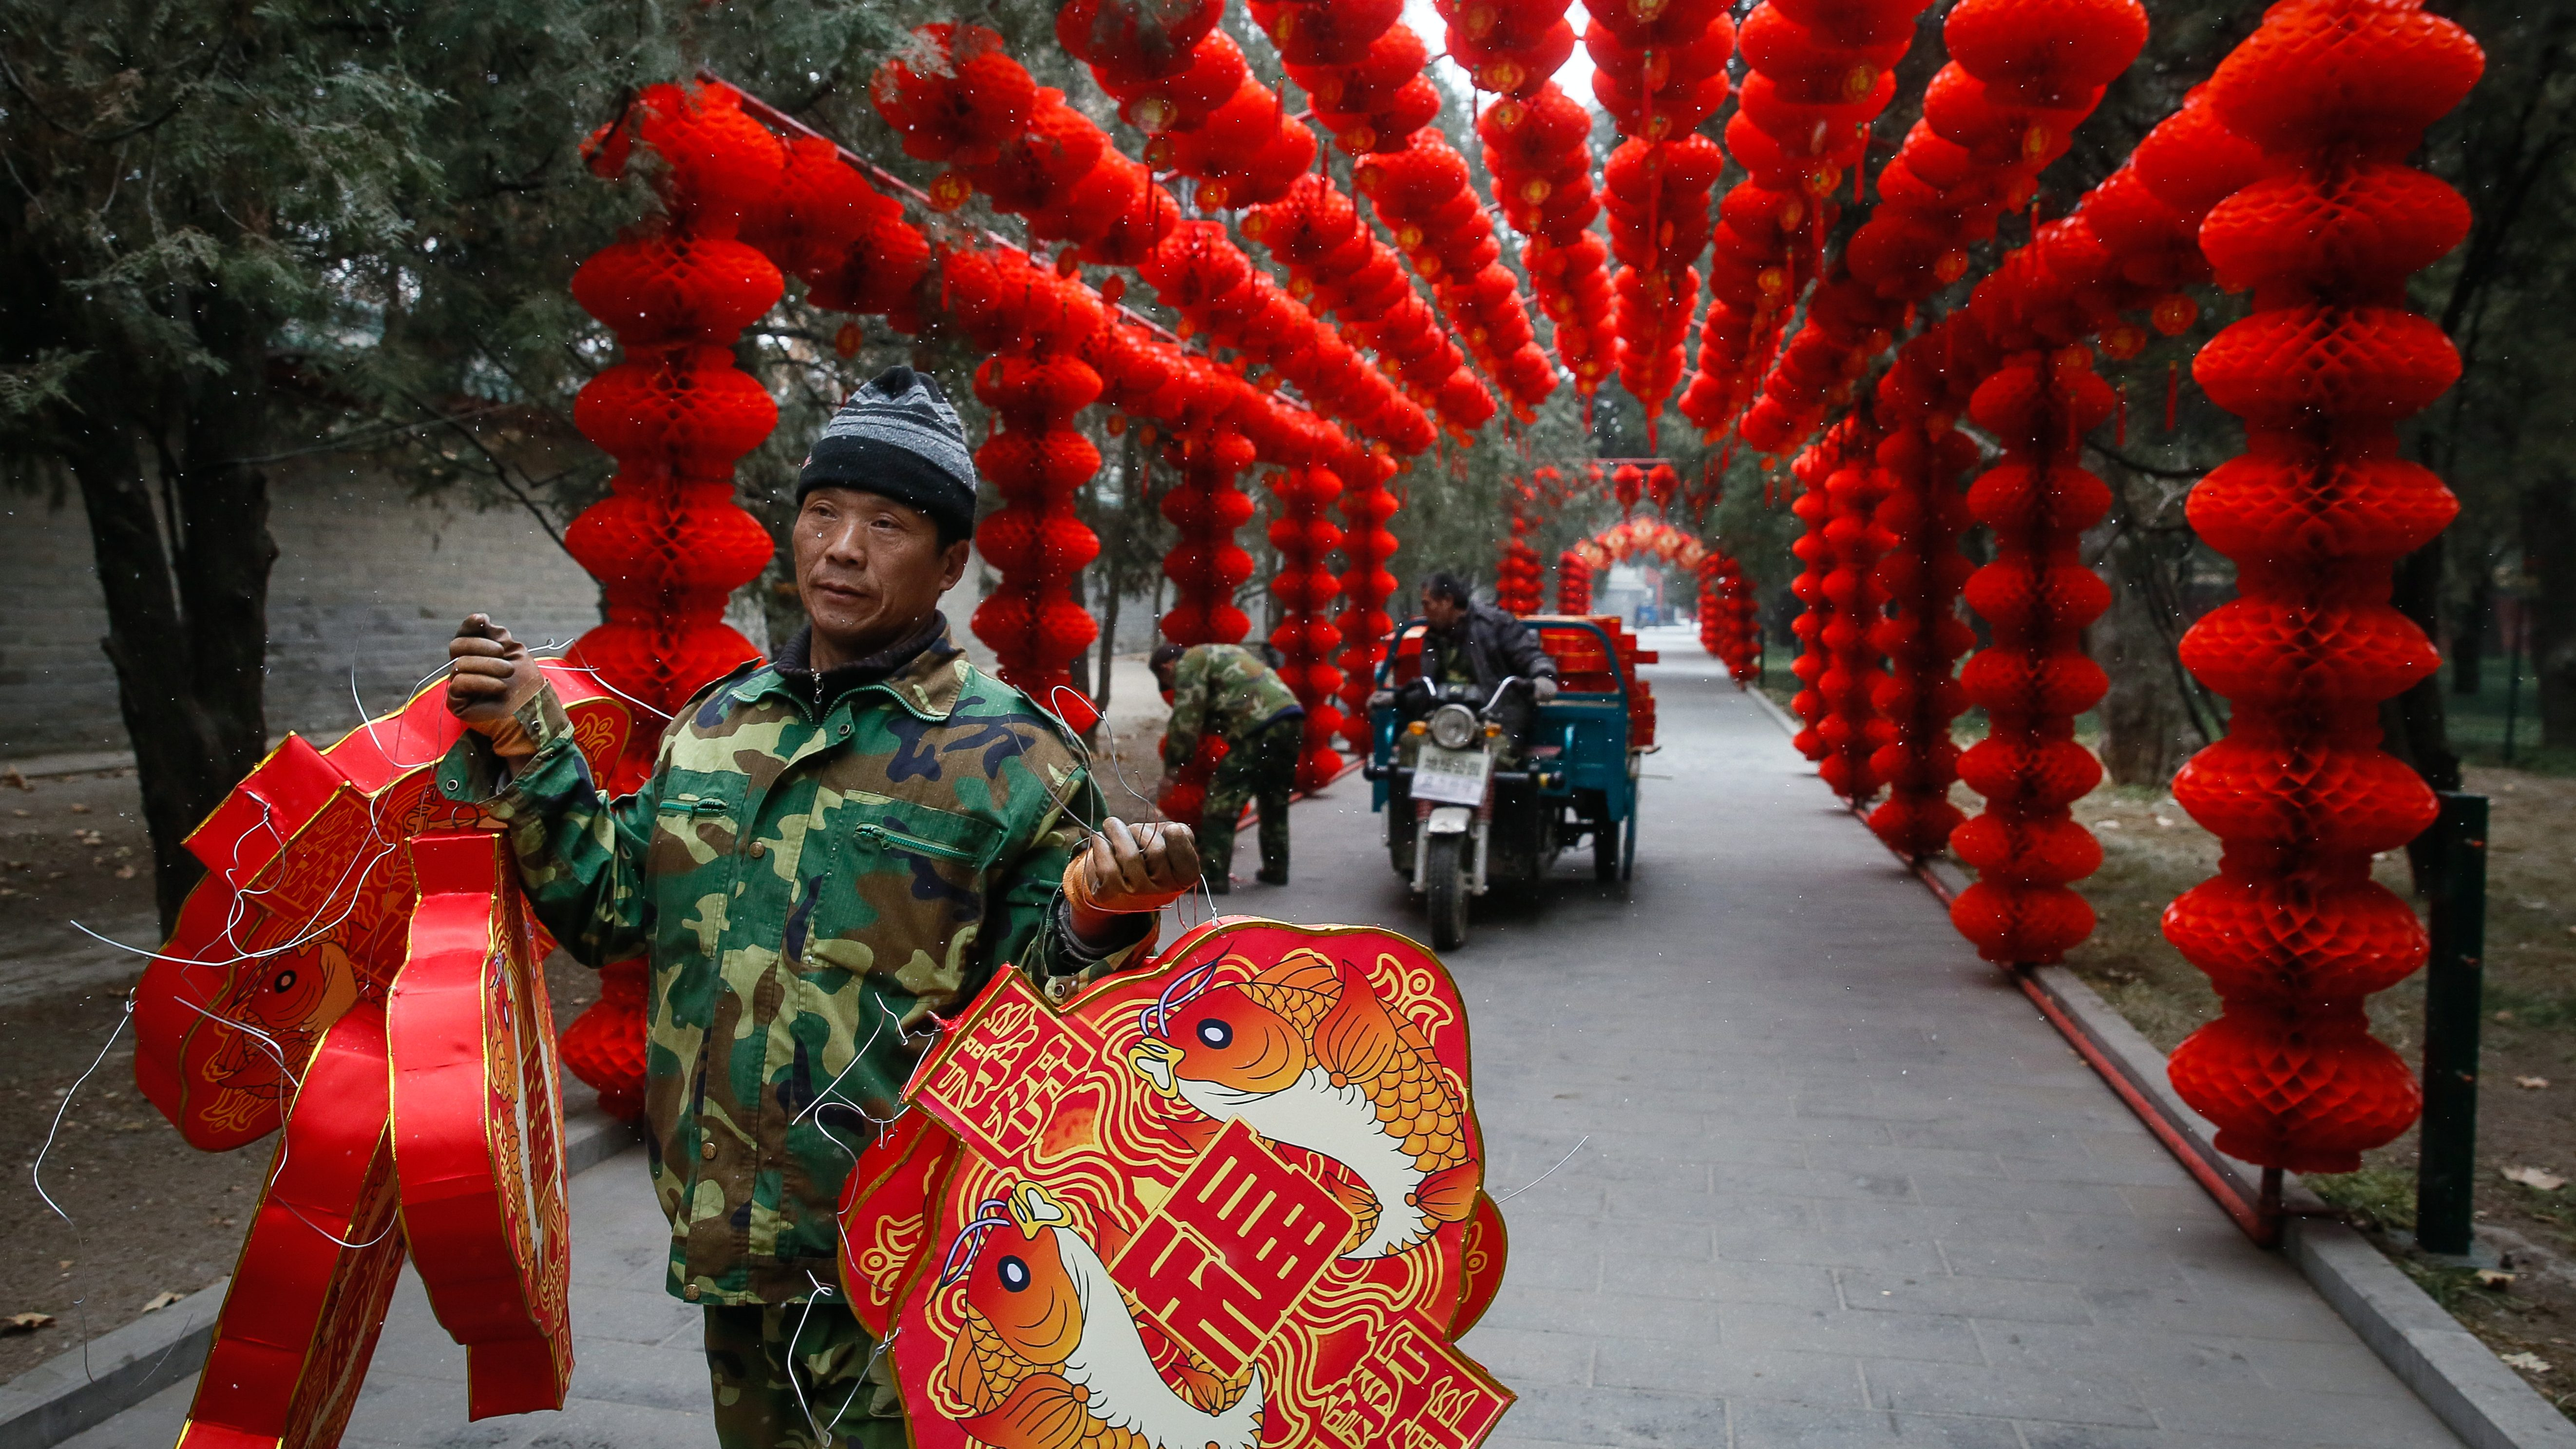 Workers decorate Ditan Park to celebrate the upcoming China Lunar New Year in Beijing, China, 16 January 2017. The Chinese Lunar New Year, or Spring Festival, which falls on 28 January this year will mark the Year of the Rooster.